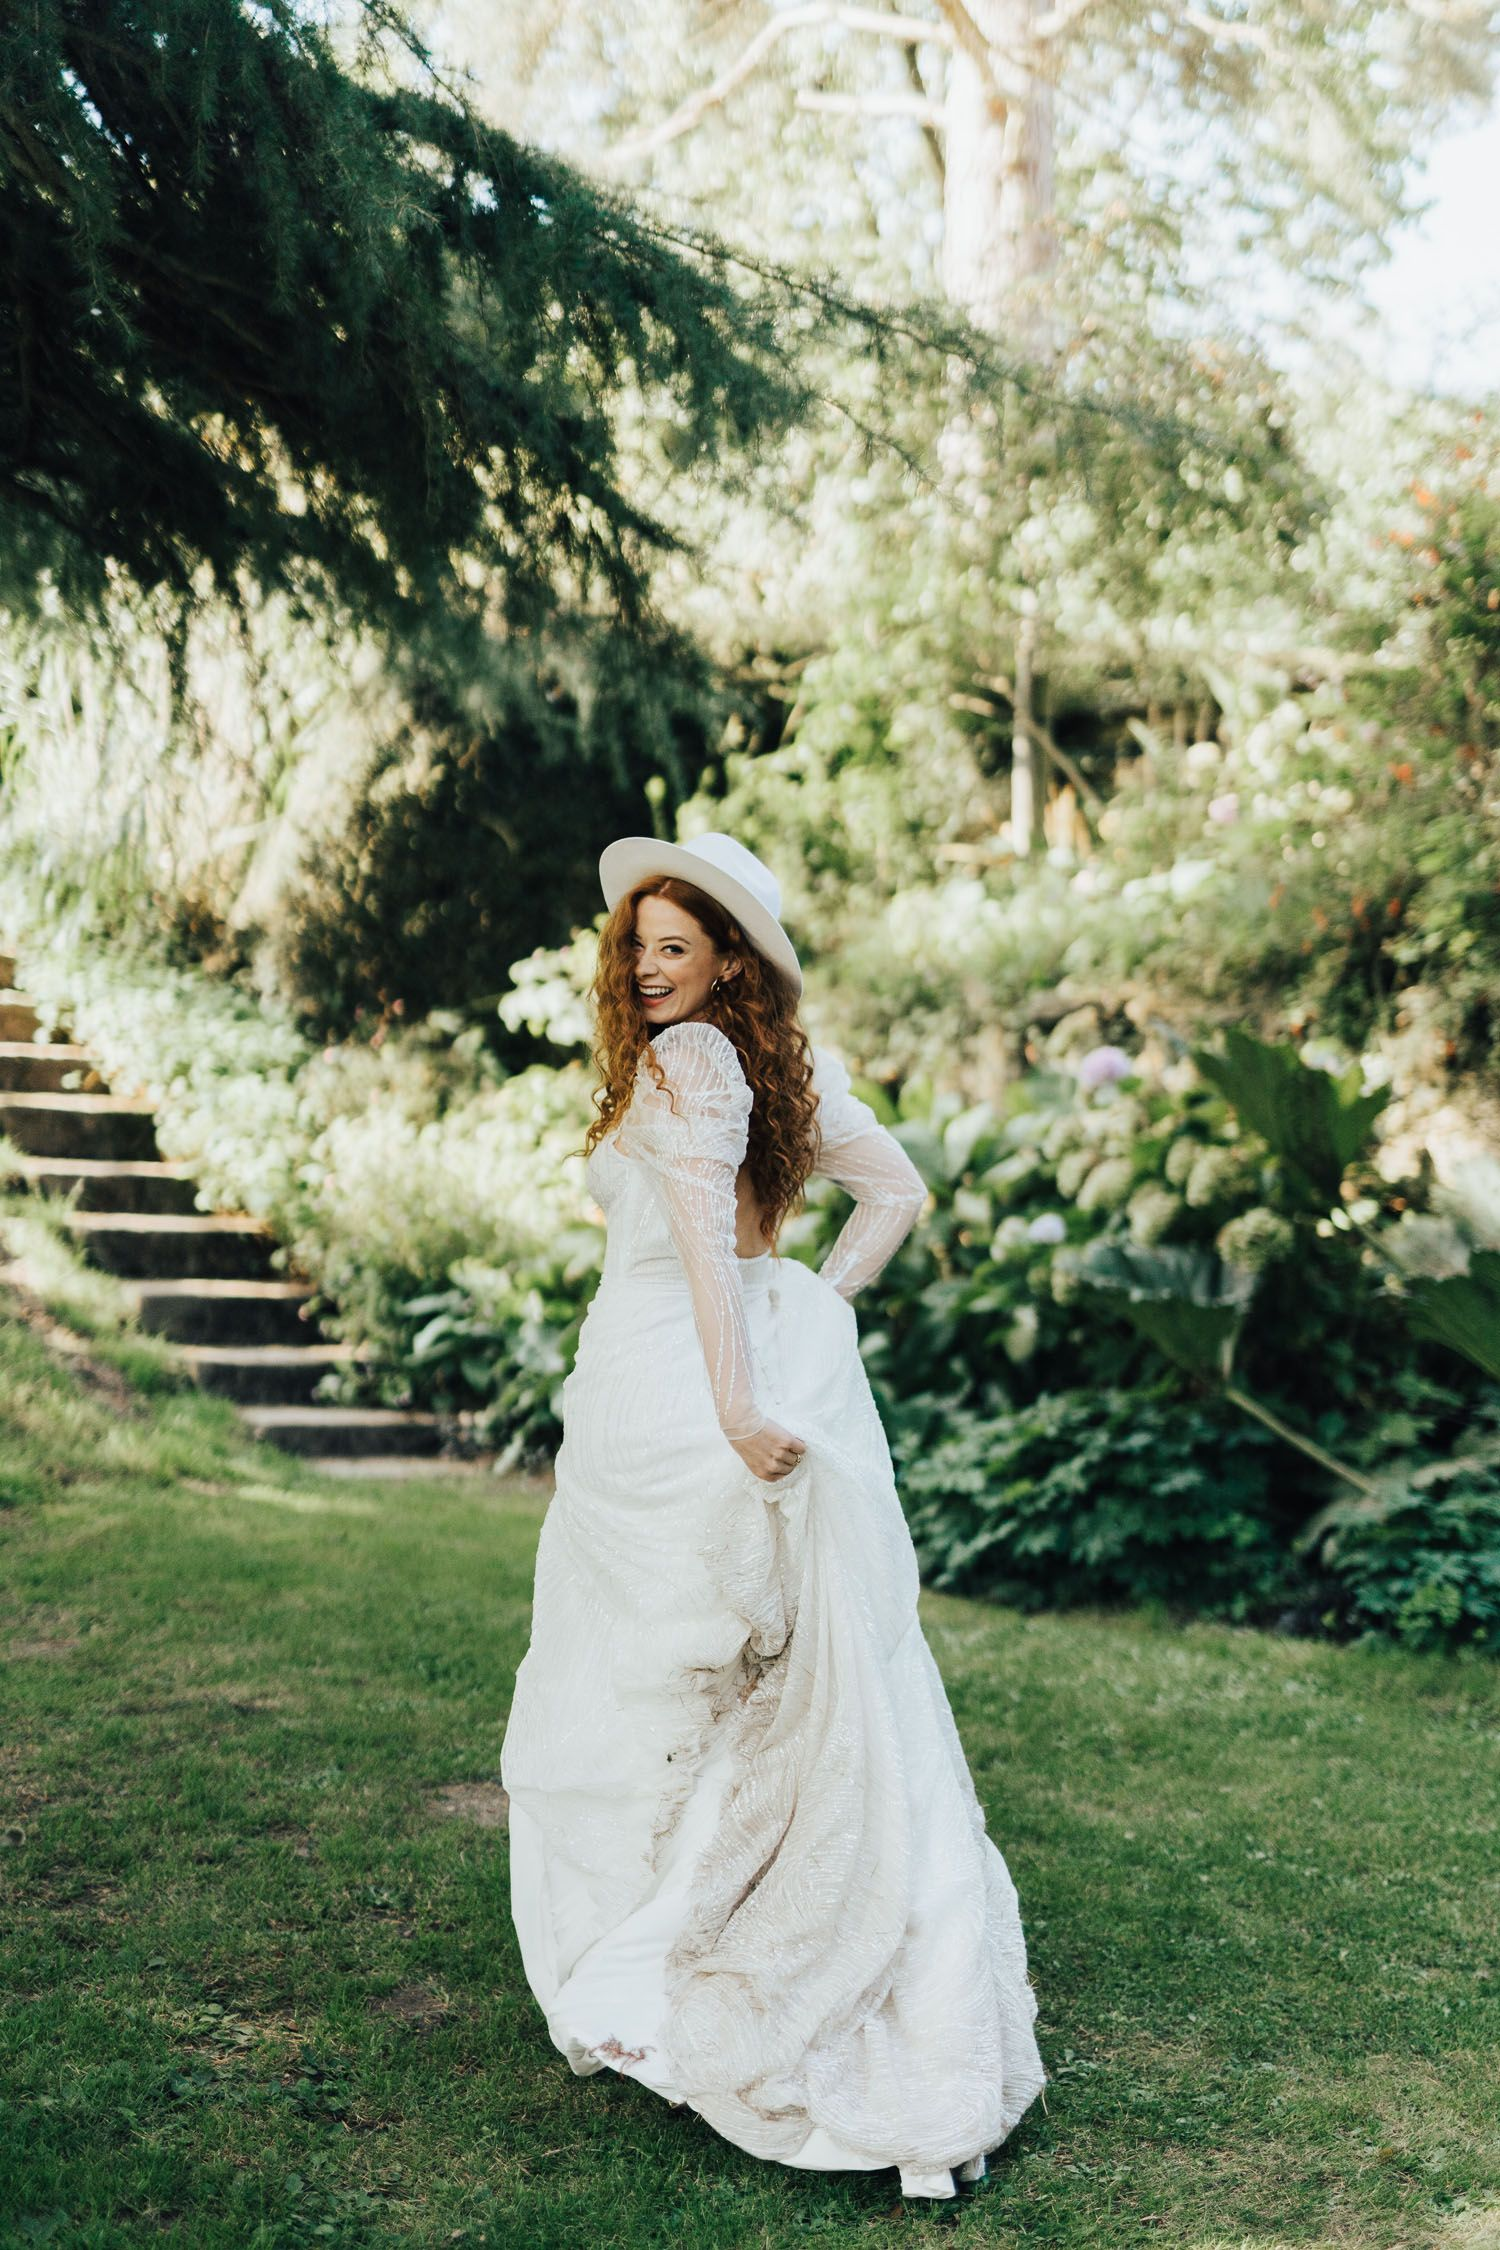 Hans Christian Andersen S The Little Mermaid Wedding Editorial In The English Countryside Little Mermaid Wedding Wedding Dress Boutiques Wedding Design Inspiration [ 2250 x 1500 Pixel ]